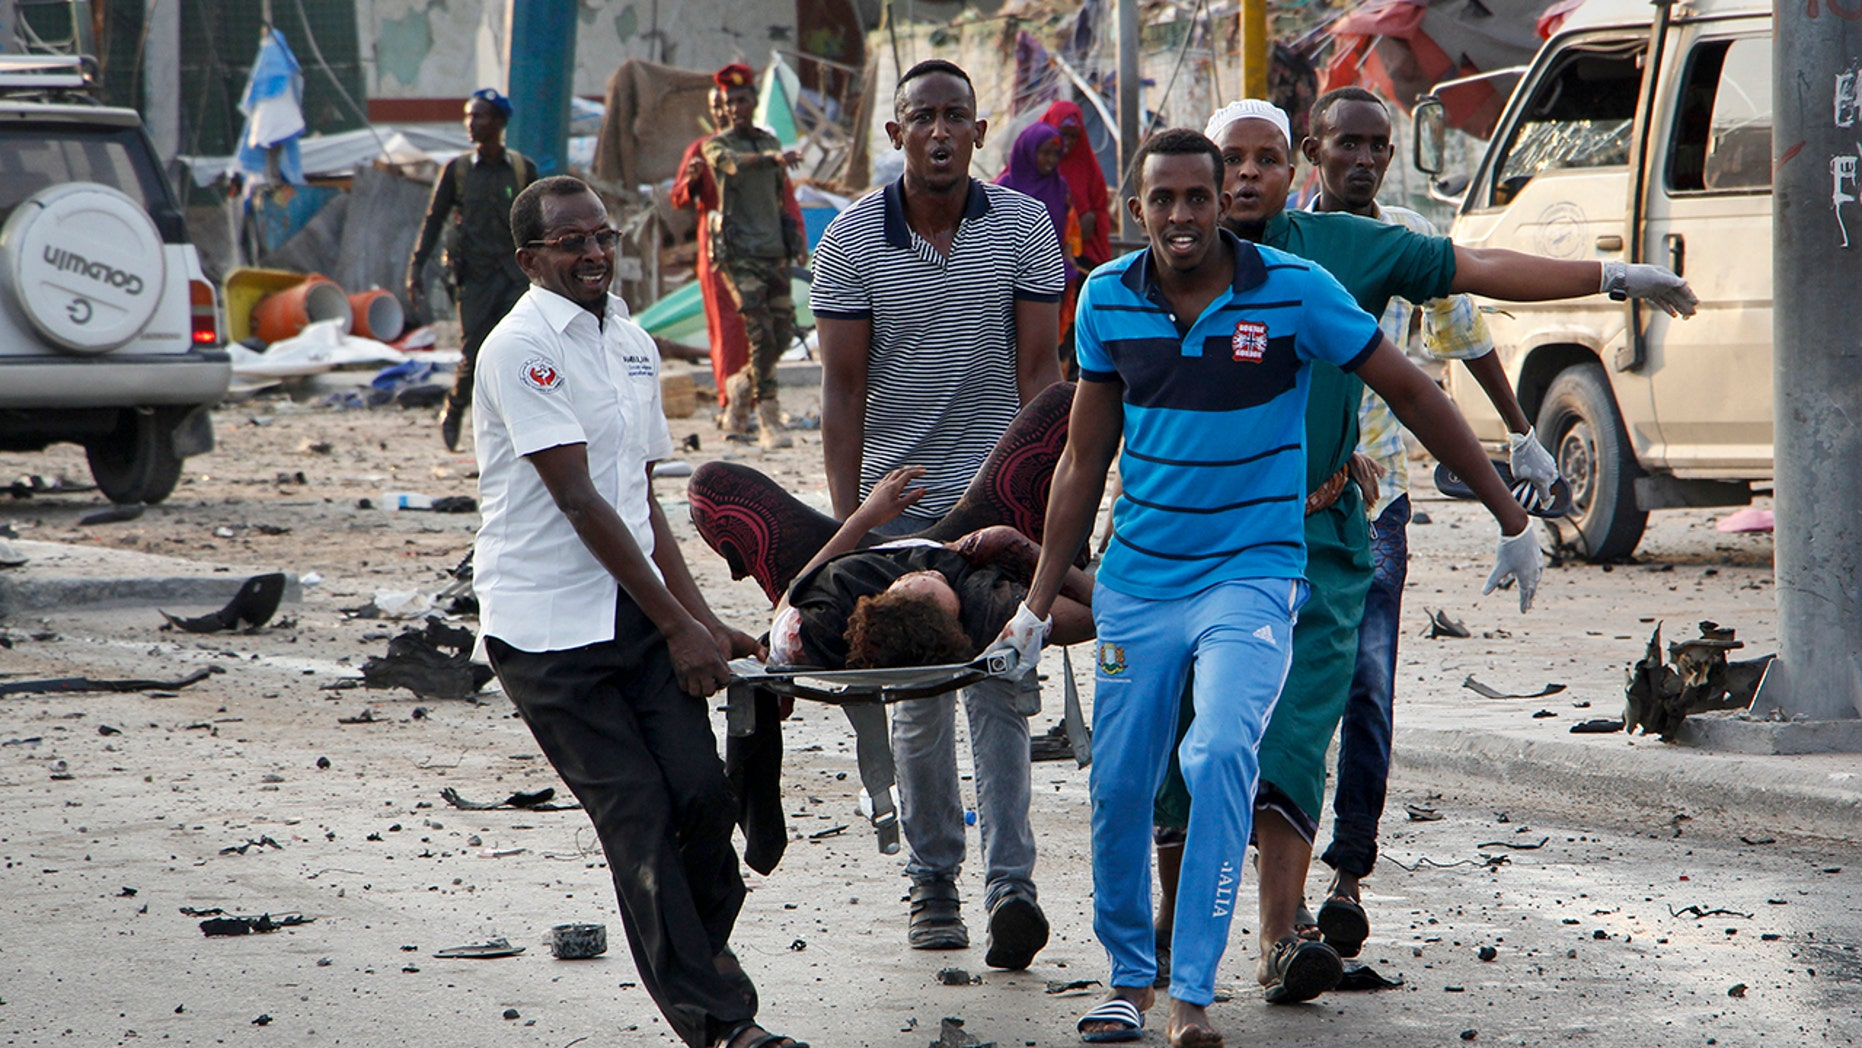 Bombs target Somali hotel and police in Mogadishu